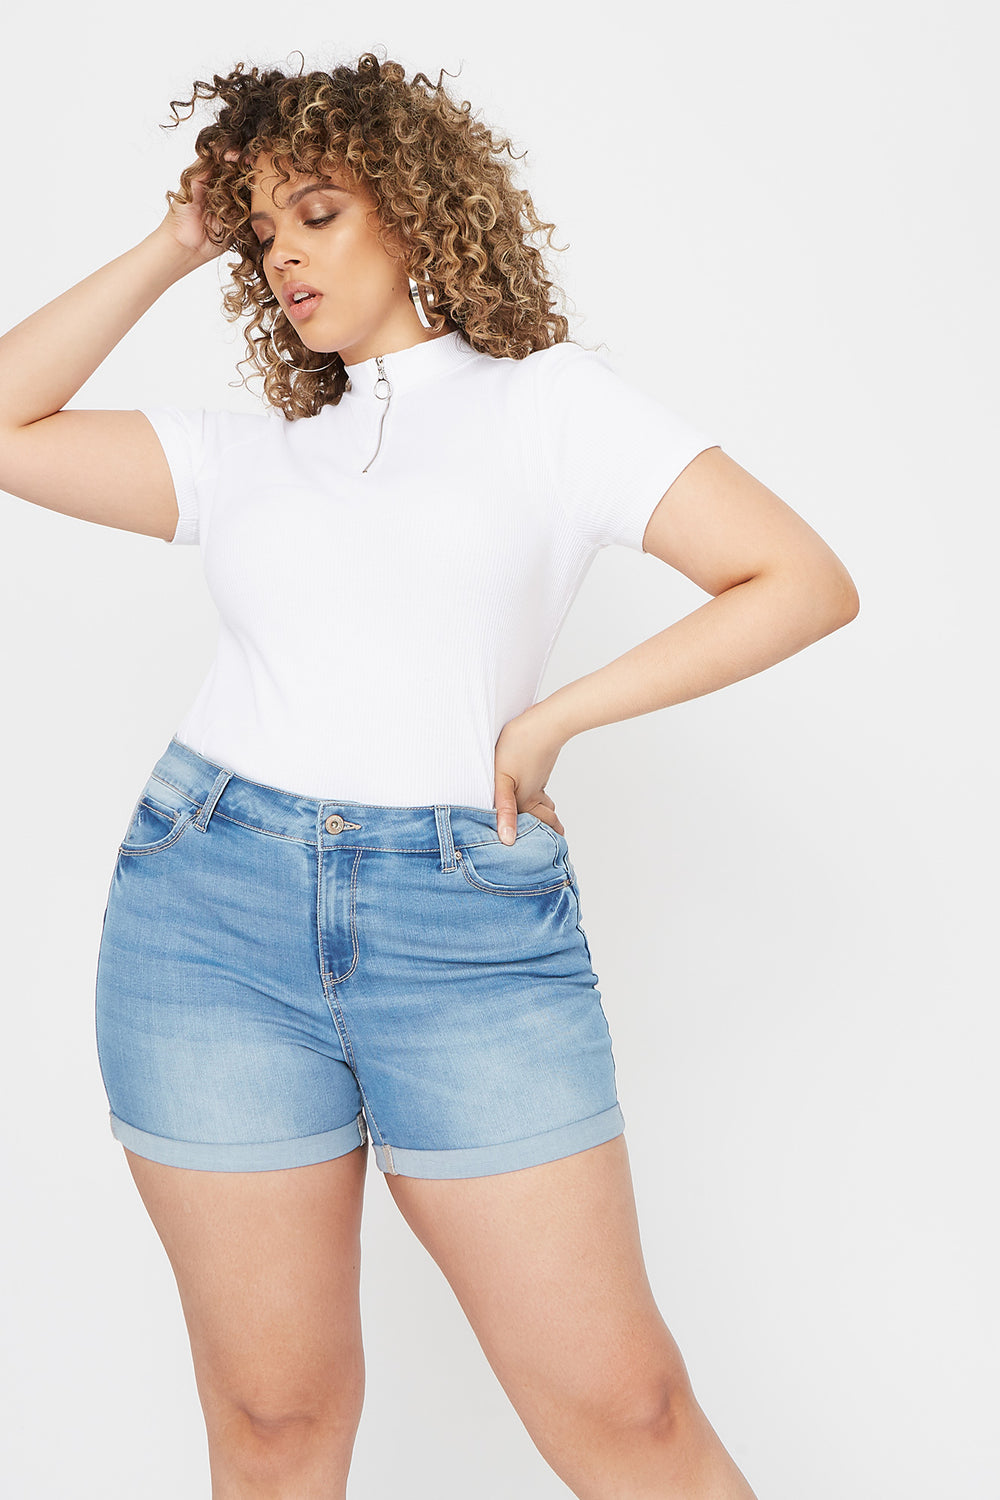 Plus Size Butt, I Love You High-Rise Push-Up Cuffed Short Sky Blue